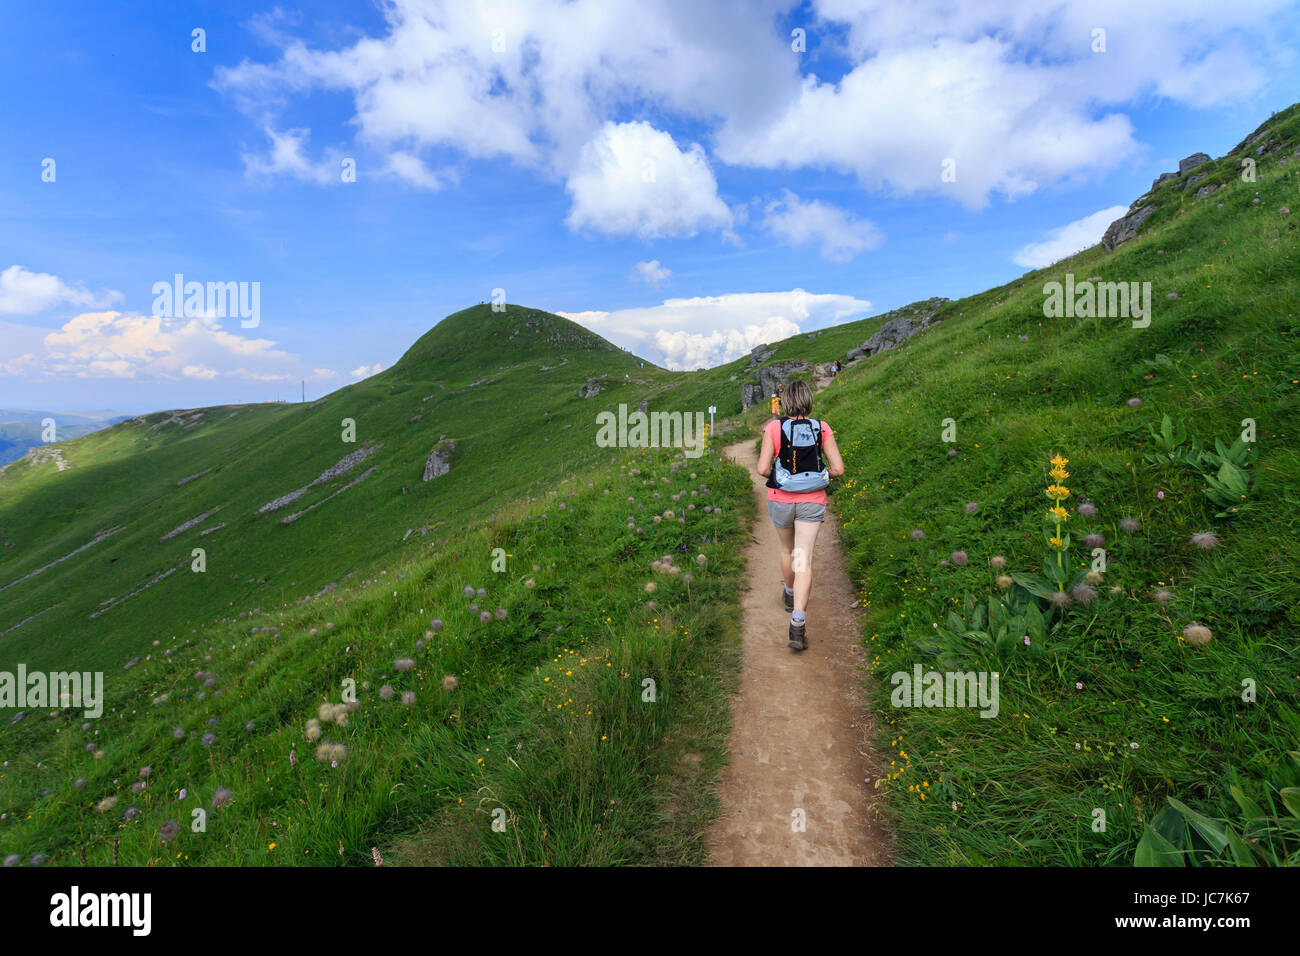 France, Cantal (15), le Plomb du Cantal, sentier vers le sommet devant // France, Cantal, Plomb du Cantal, trail to the summit to Stock Photo